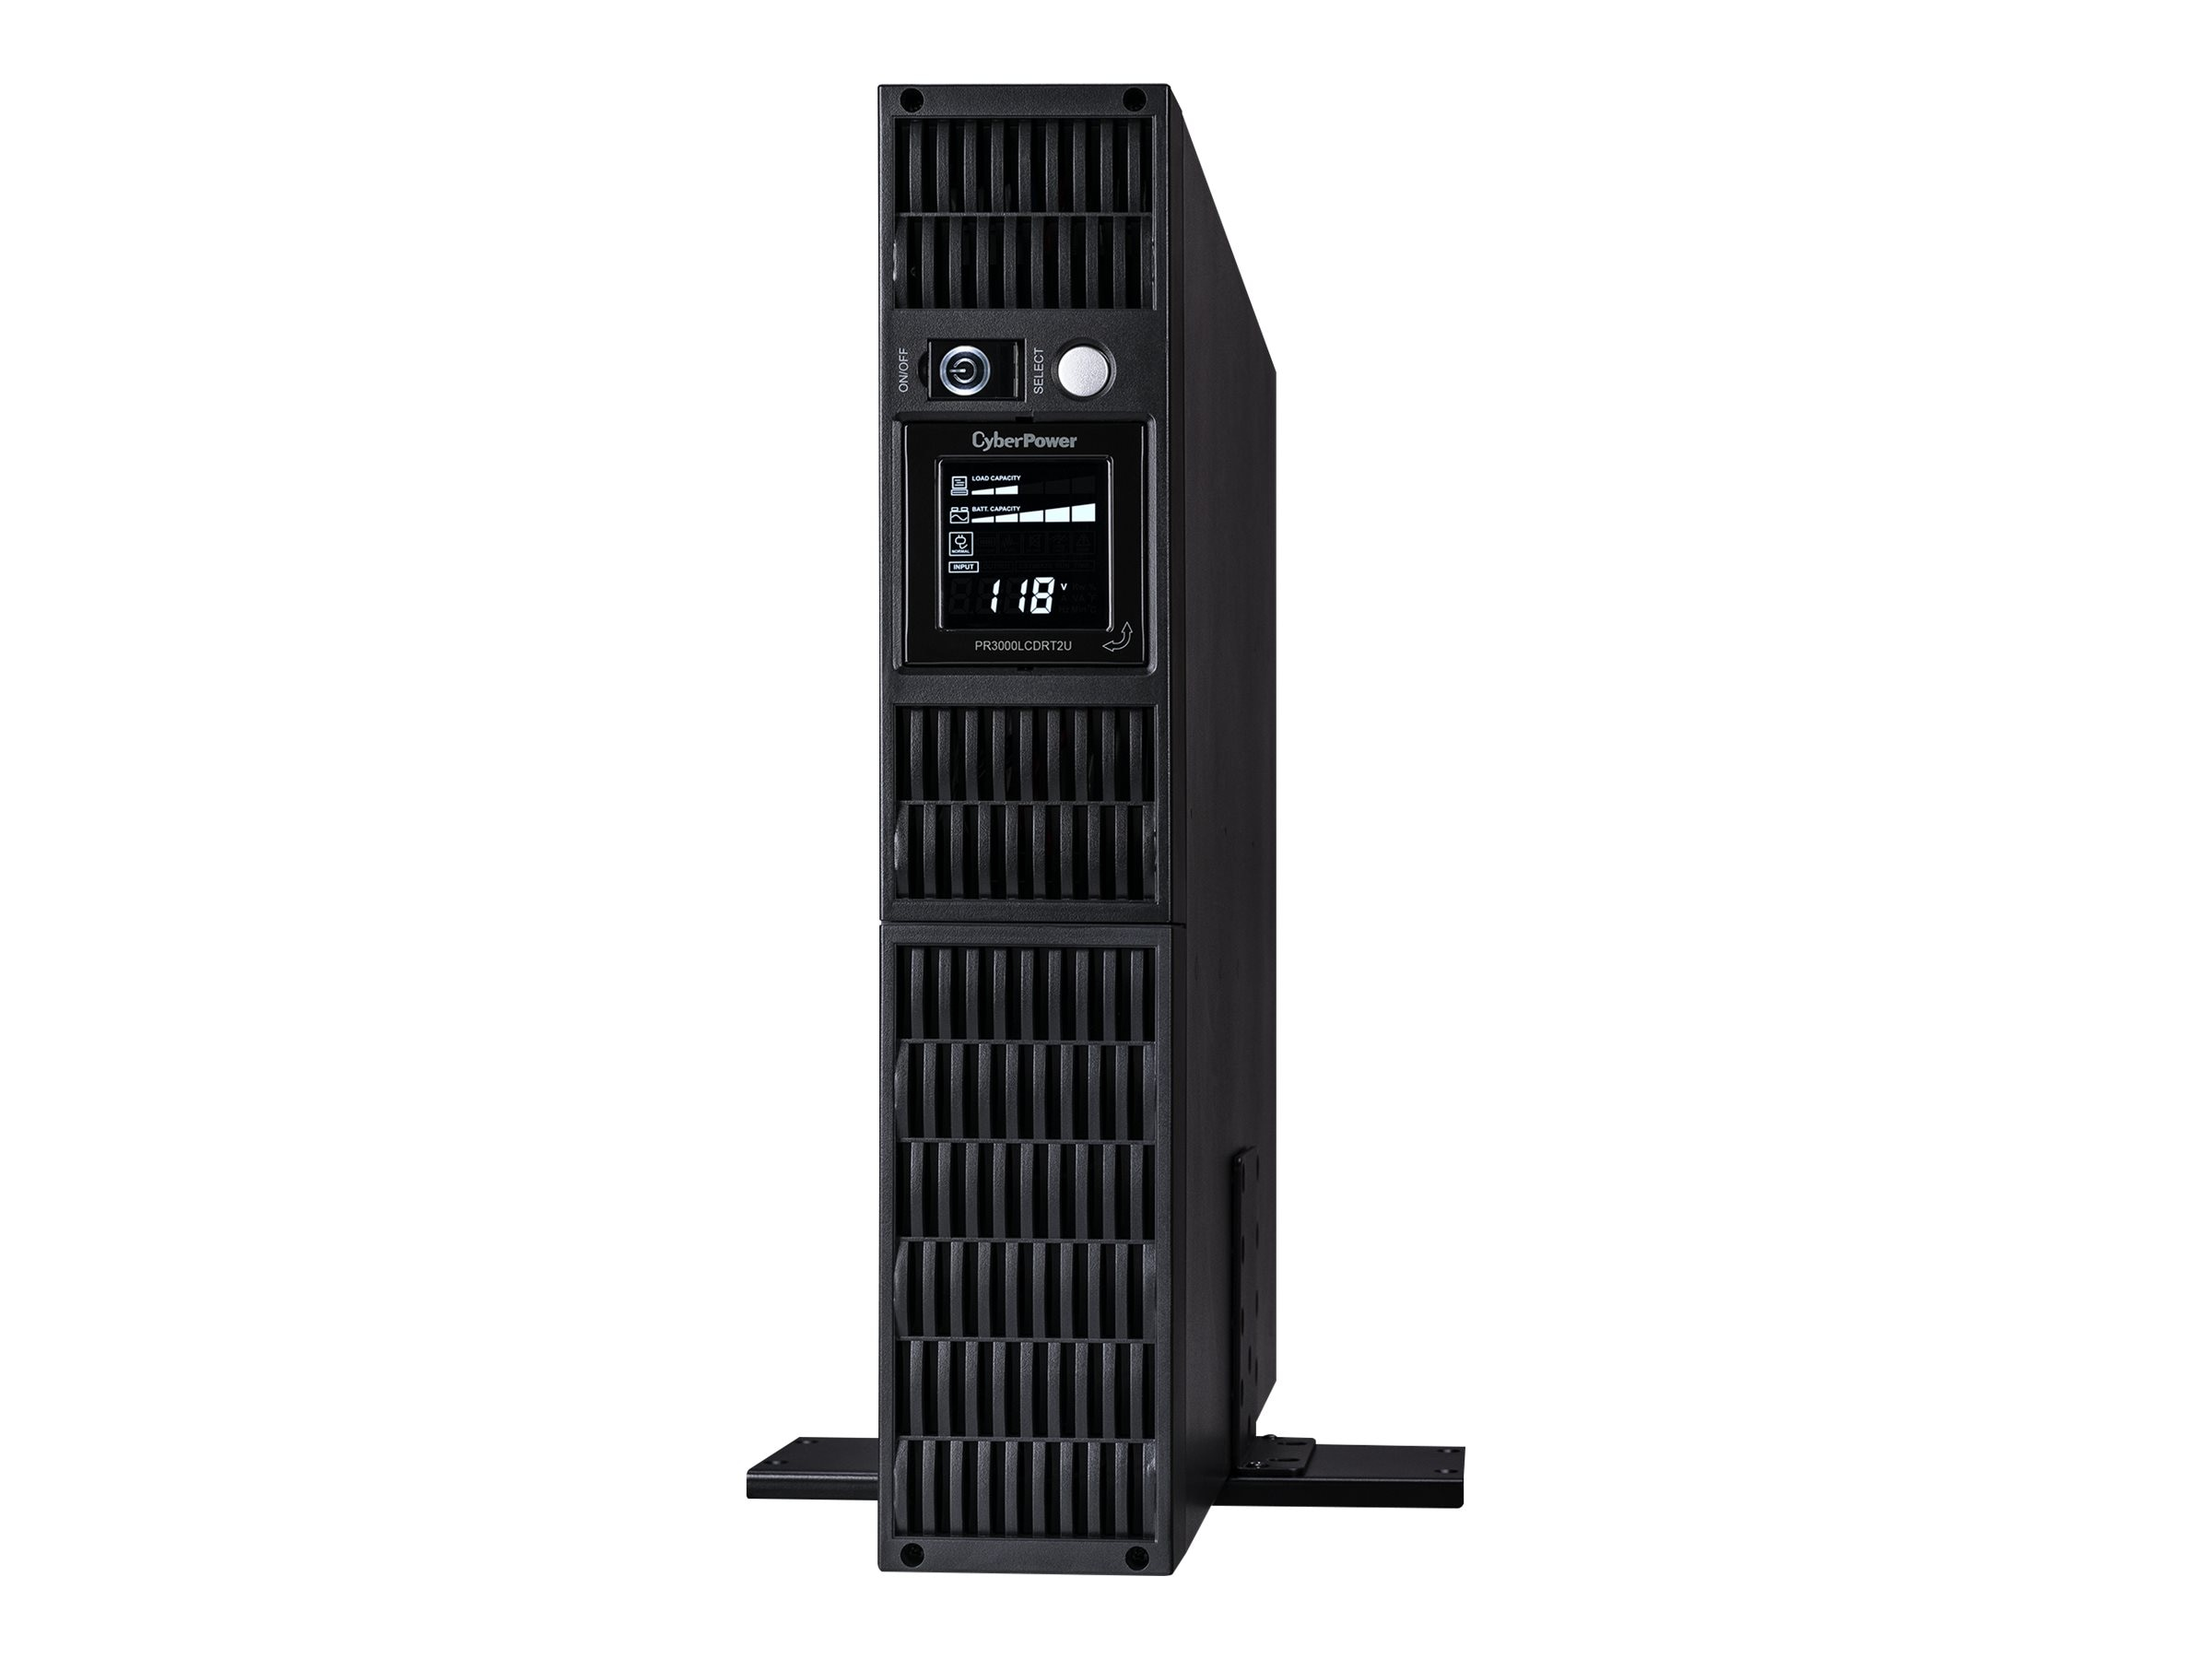 CyberPower 3000VA 2250W Smart App Sinewave LCD UPS 2U RM Tower AVR, 9 Outlets